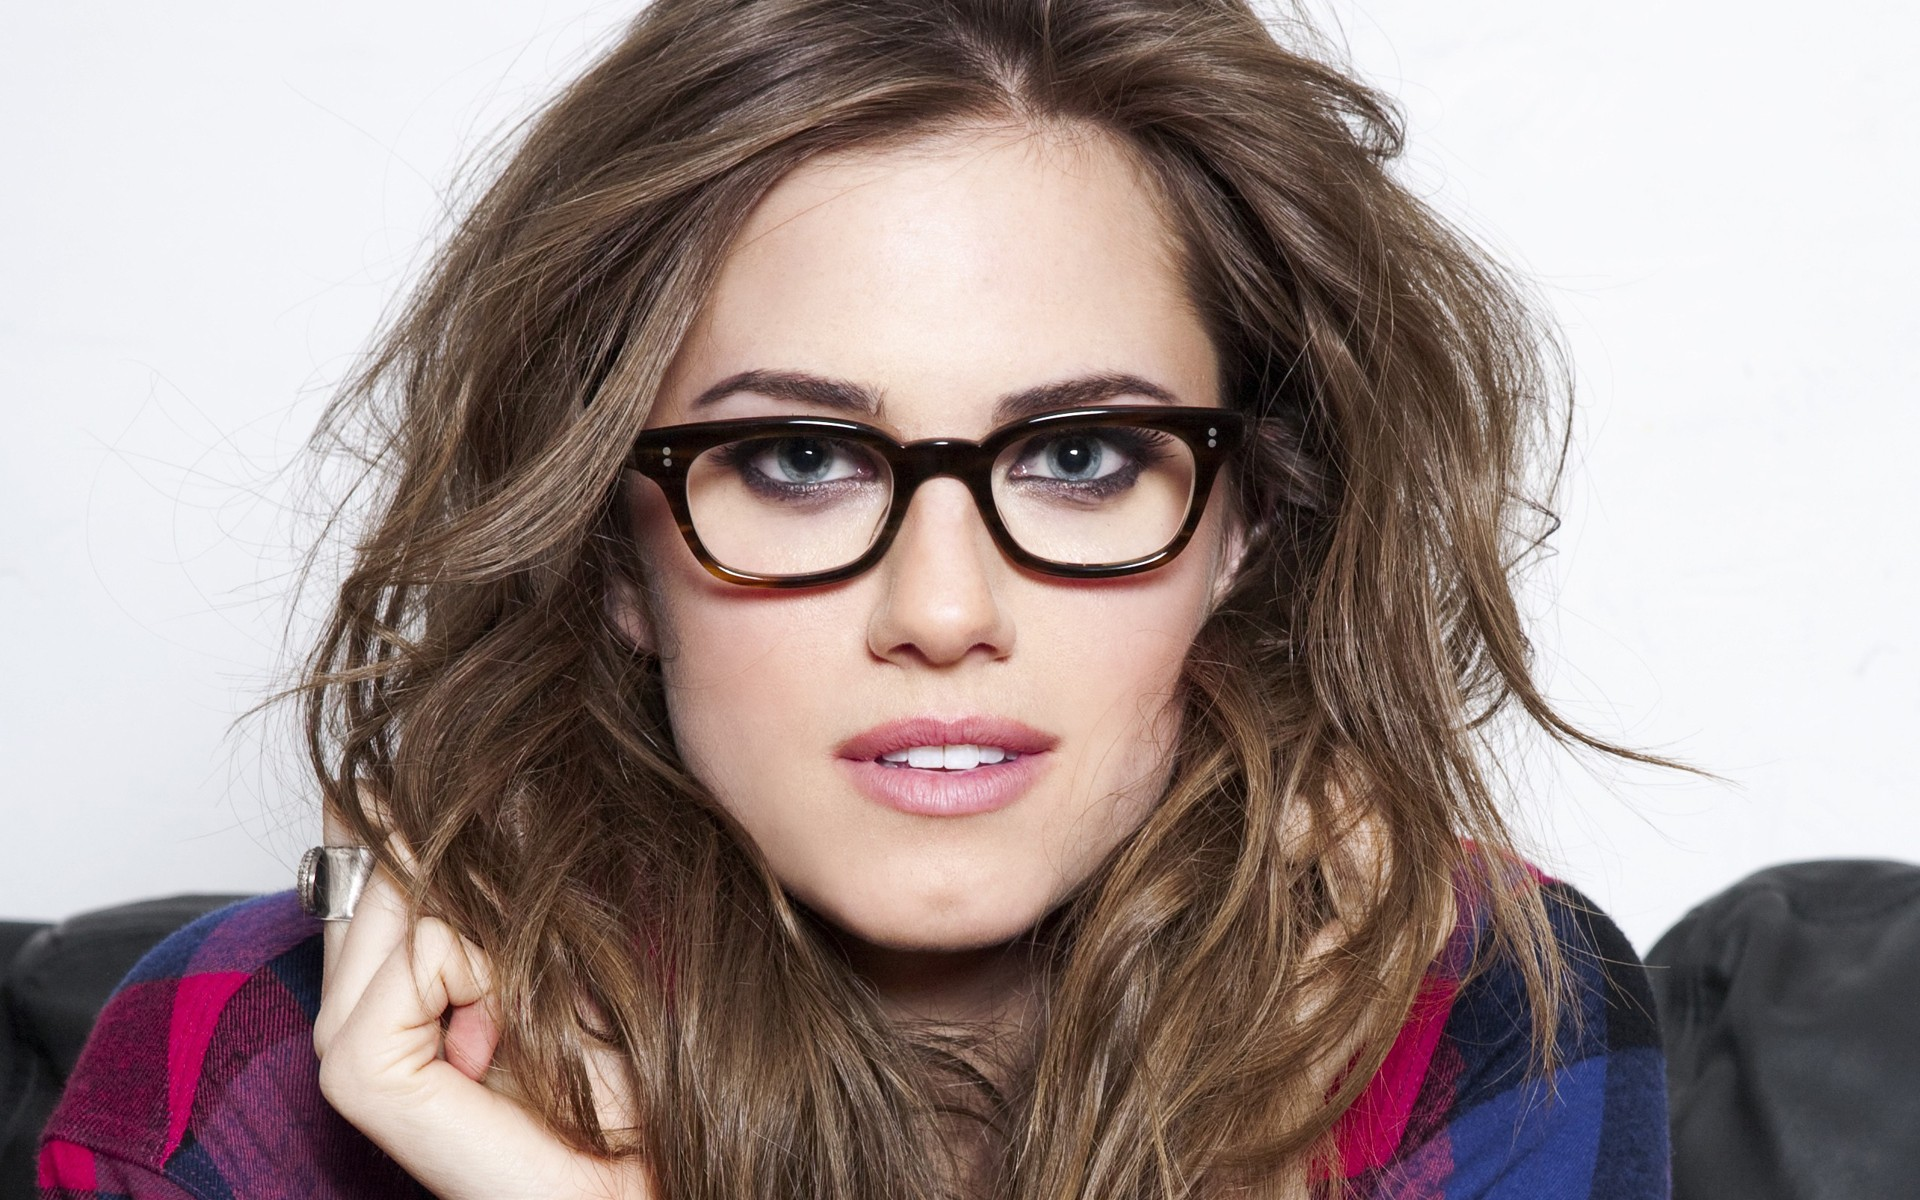 Beautiful Girls With Glasses Wallpaper